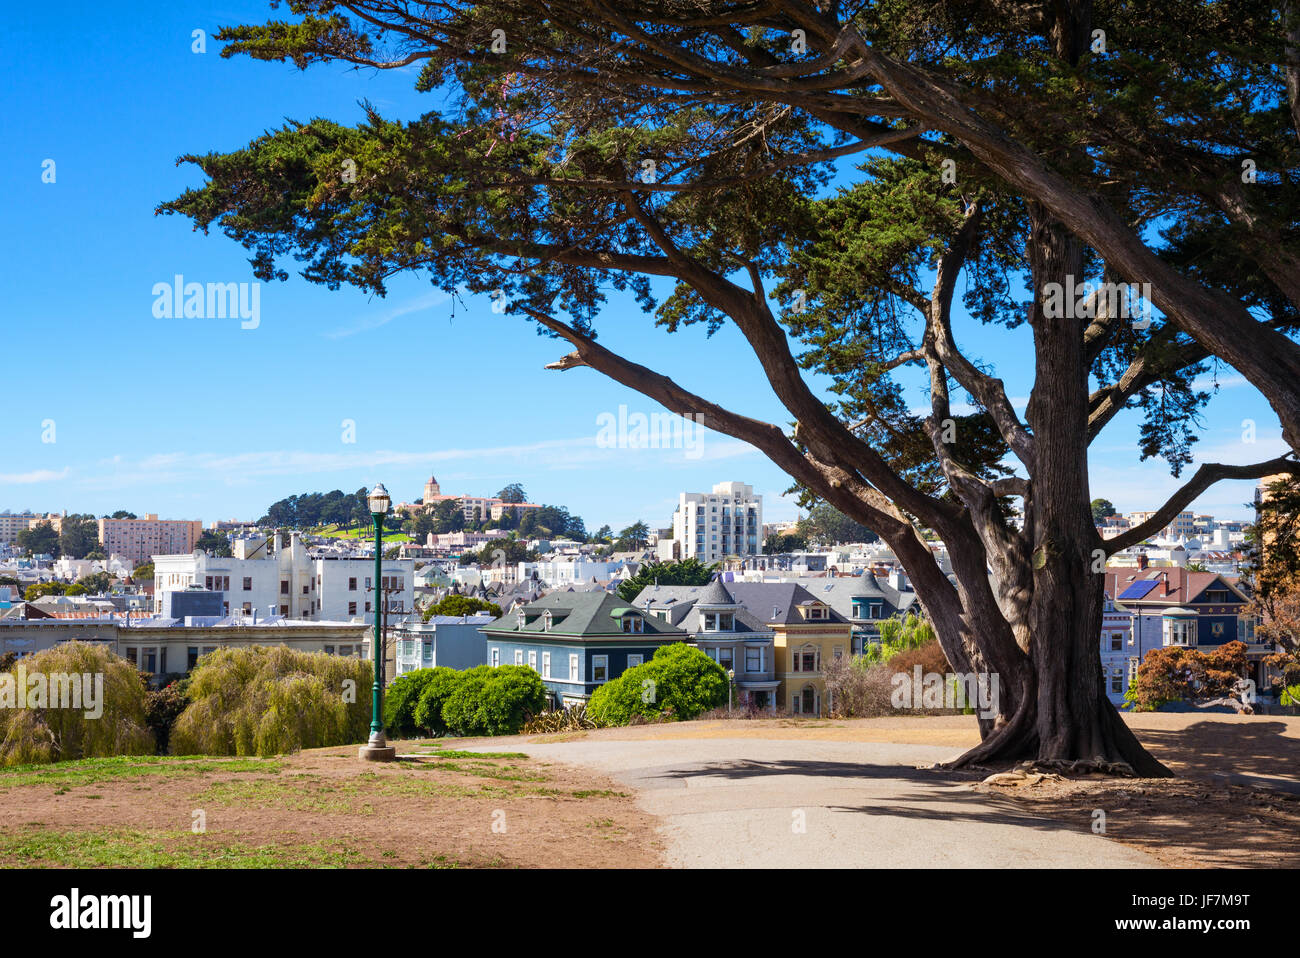 San Francisco, California, the colored traditional houses of Alamo square seen from the park - Stock Image